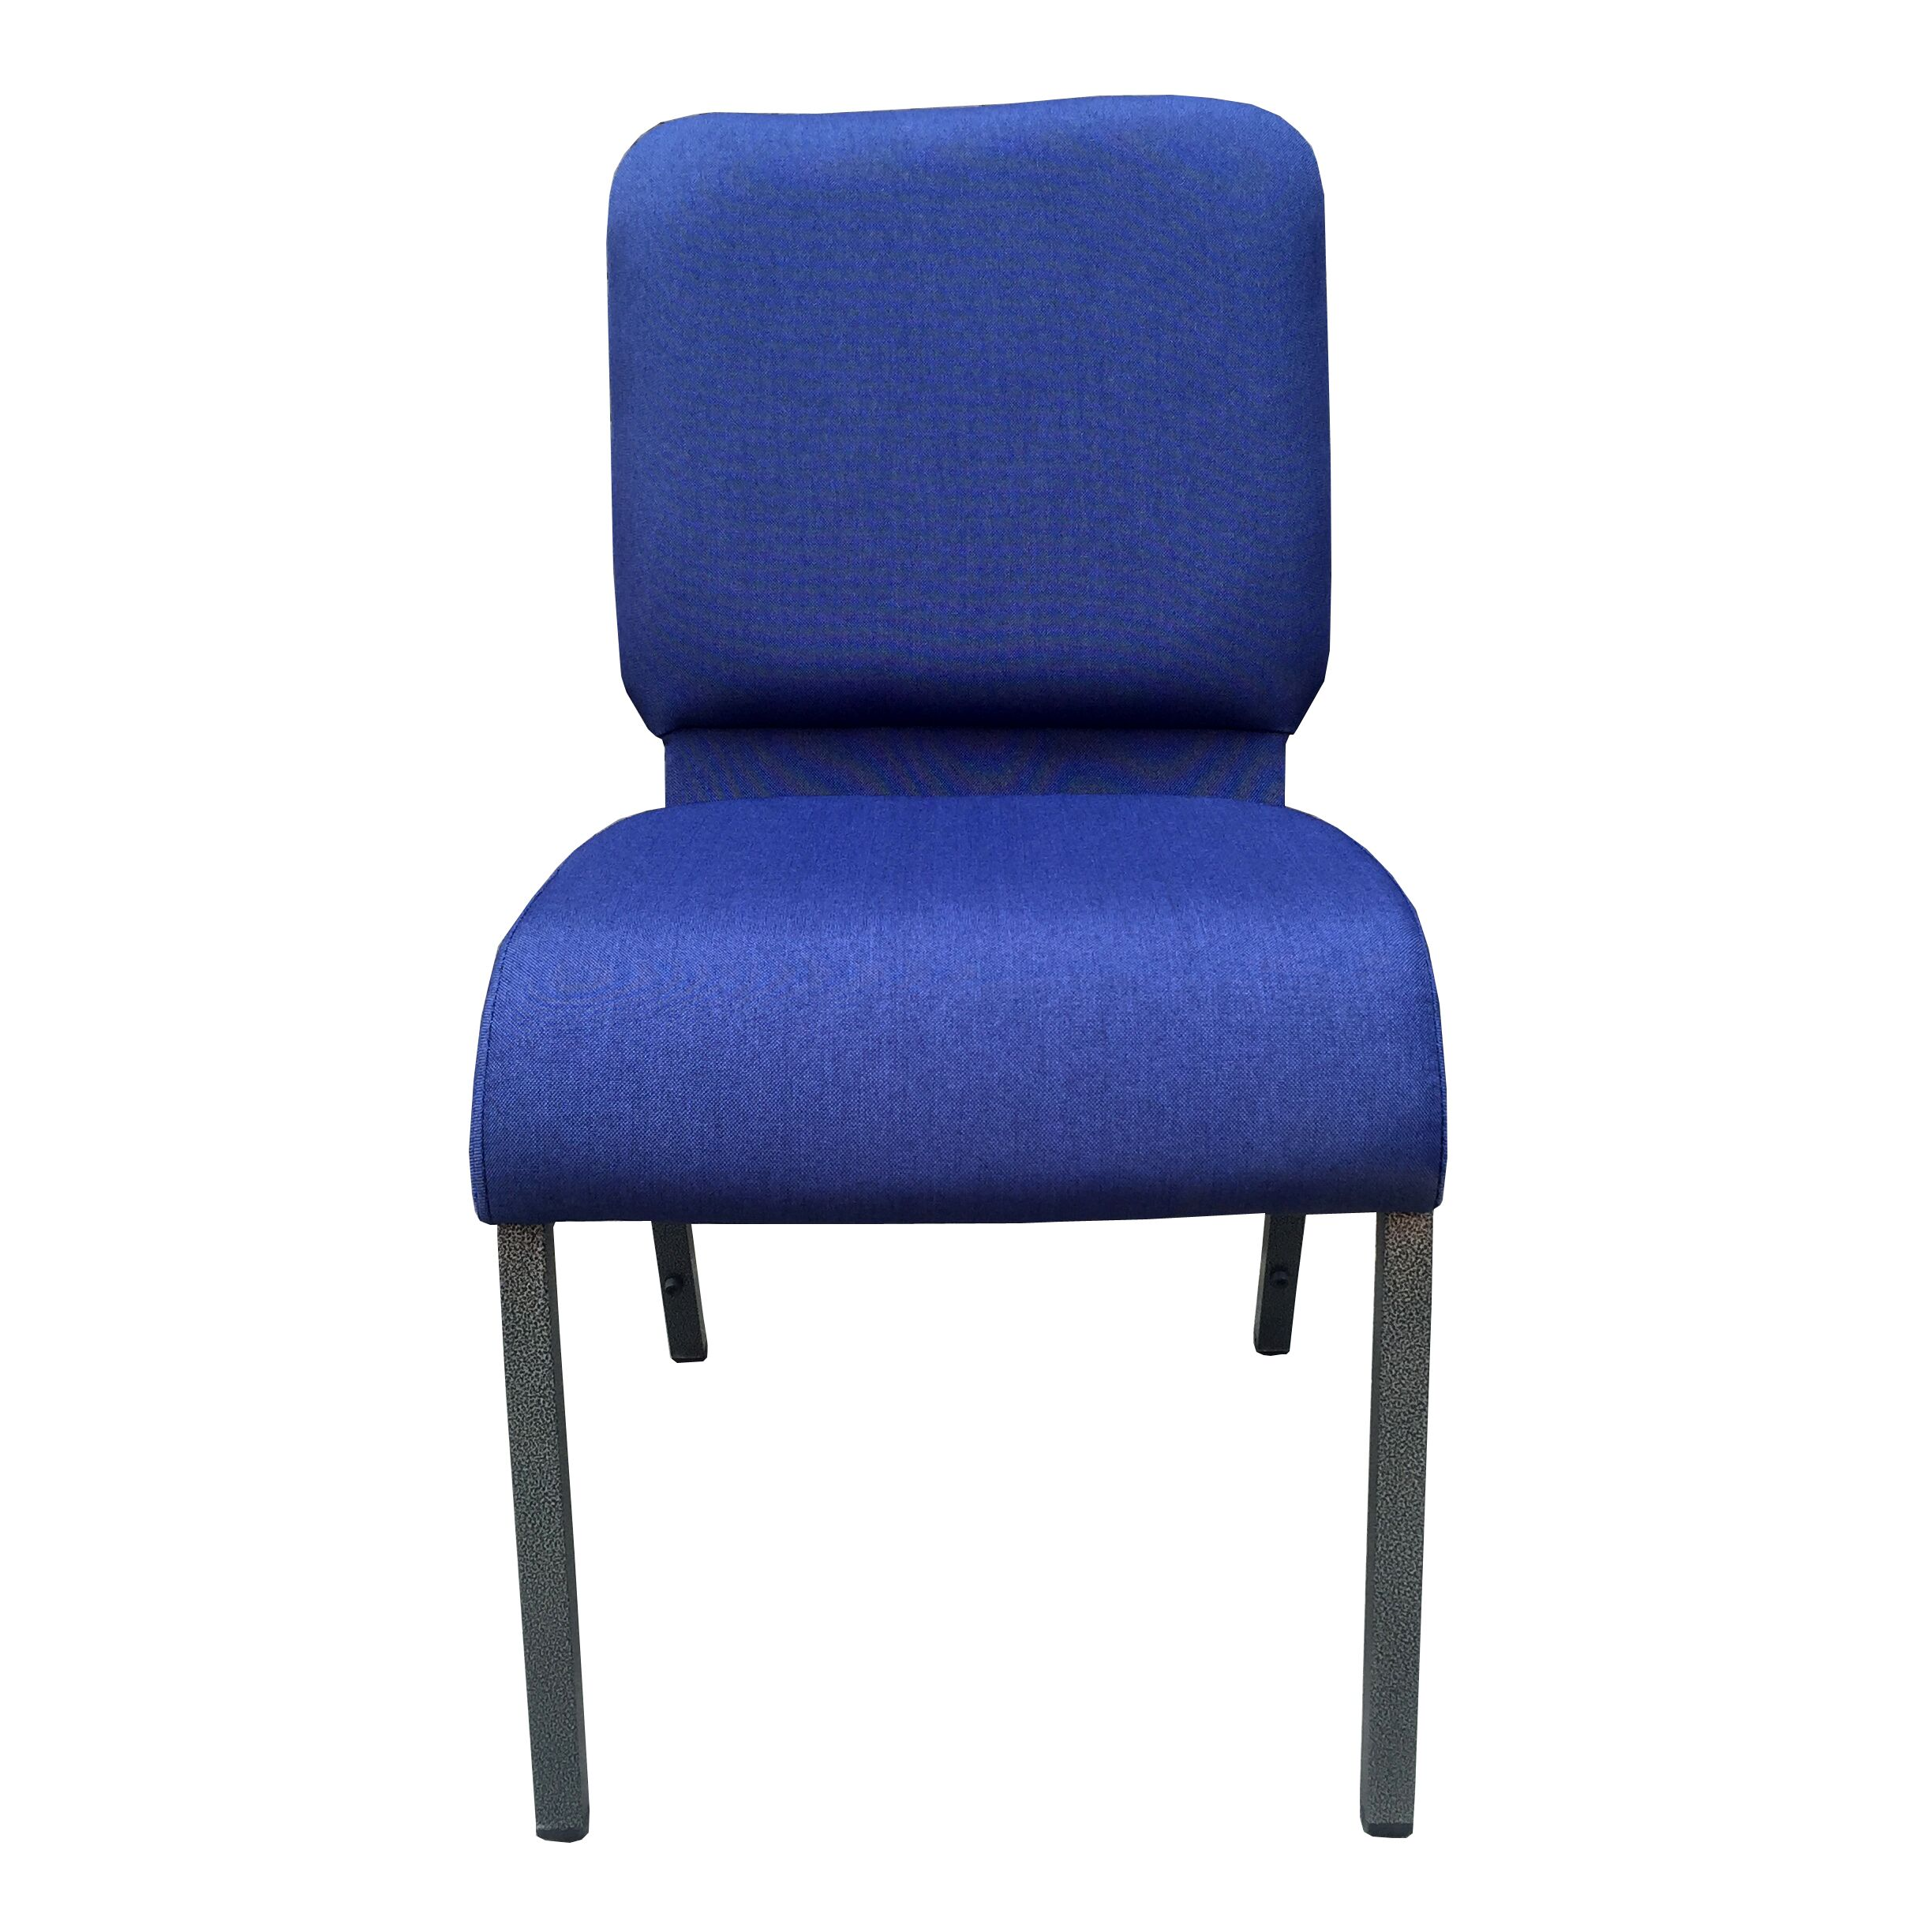 China Supplier Padded Church Chairs For Sale - 3 – Jiangchang Furniture